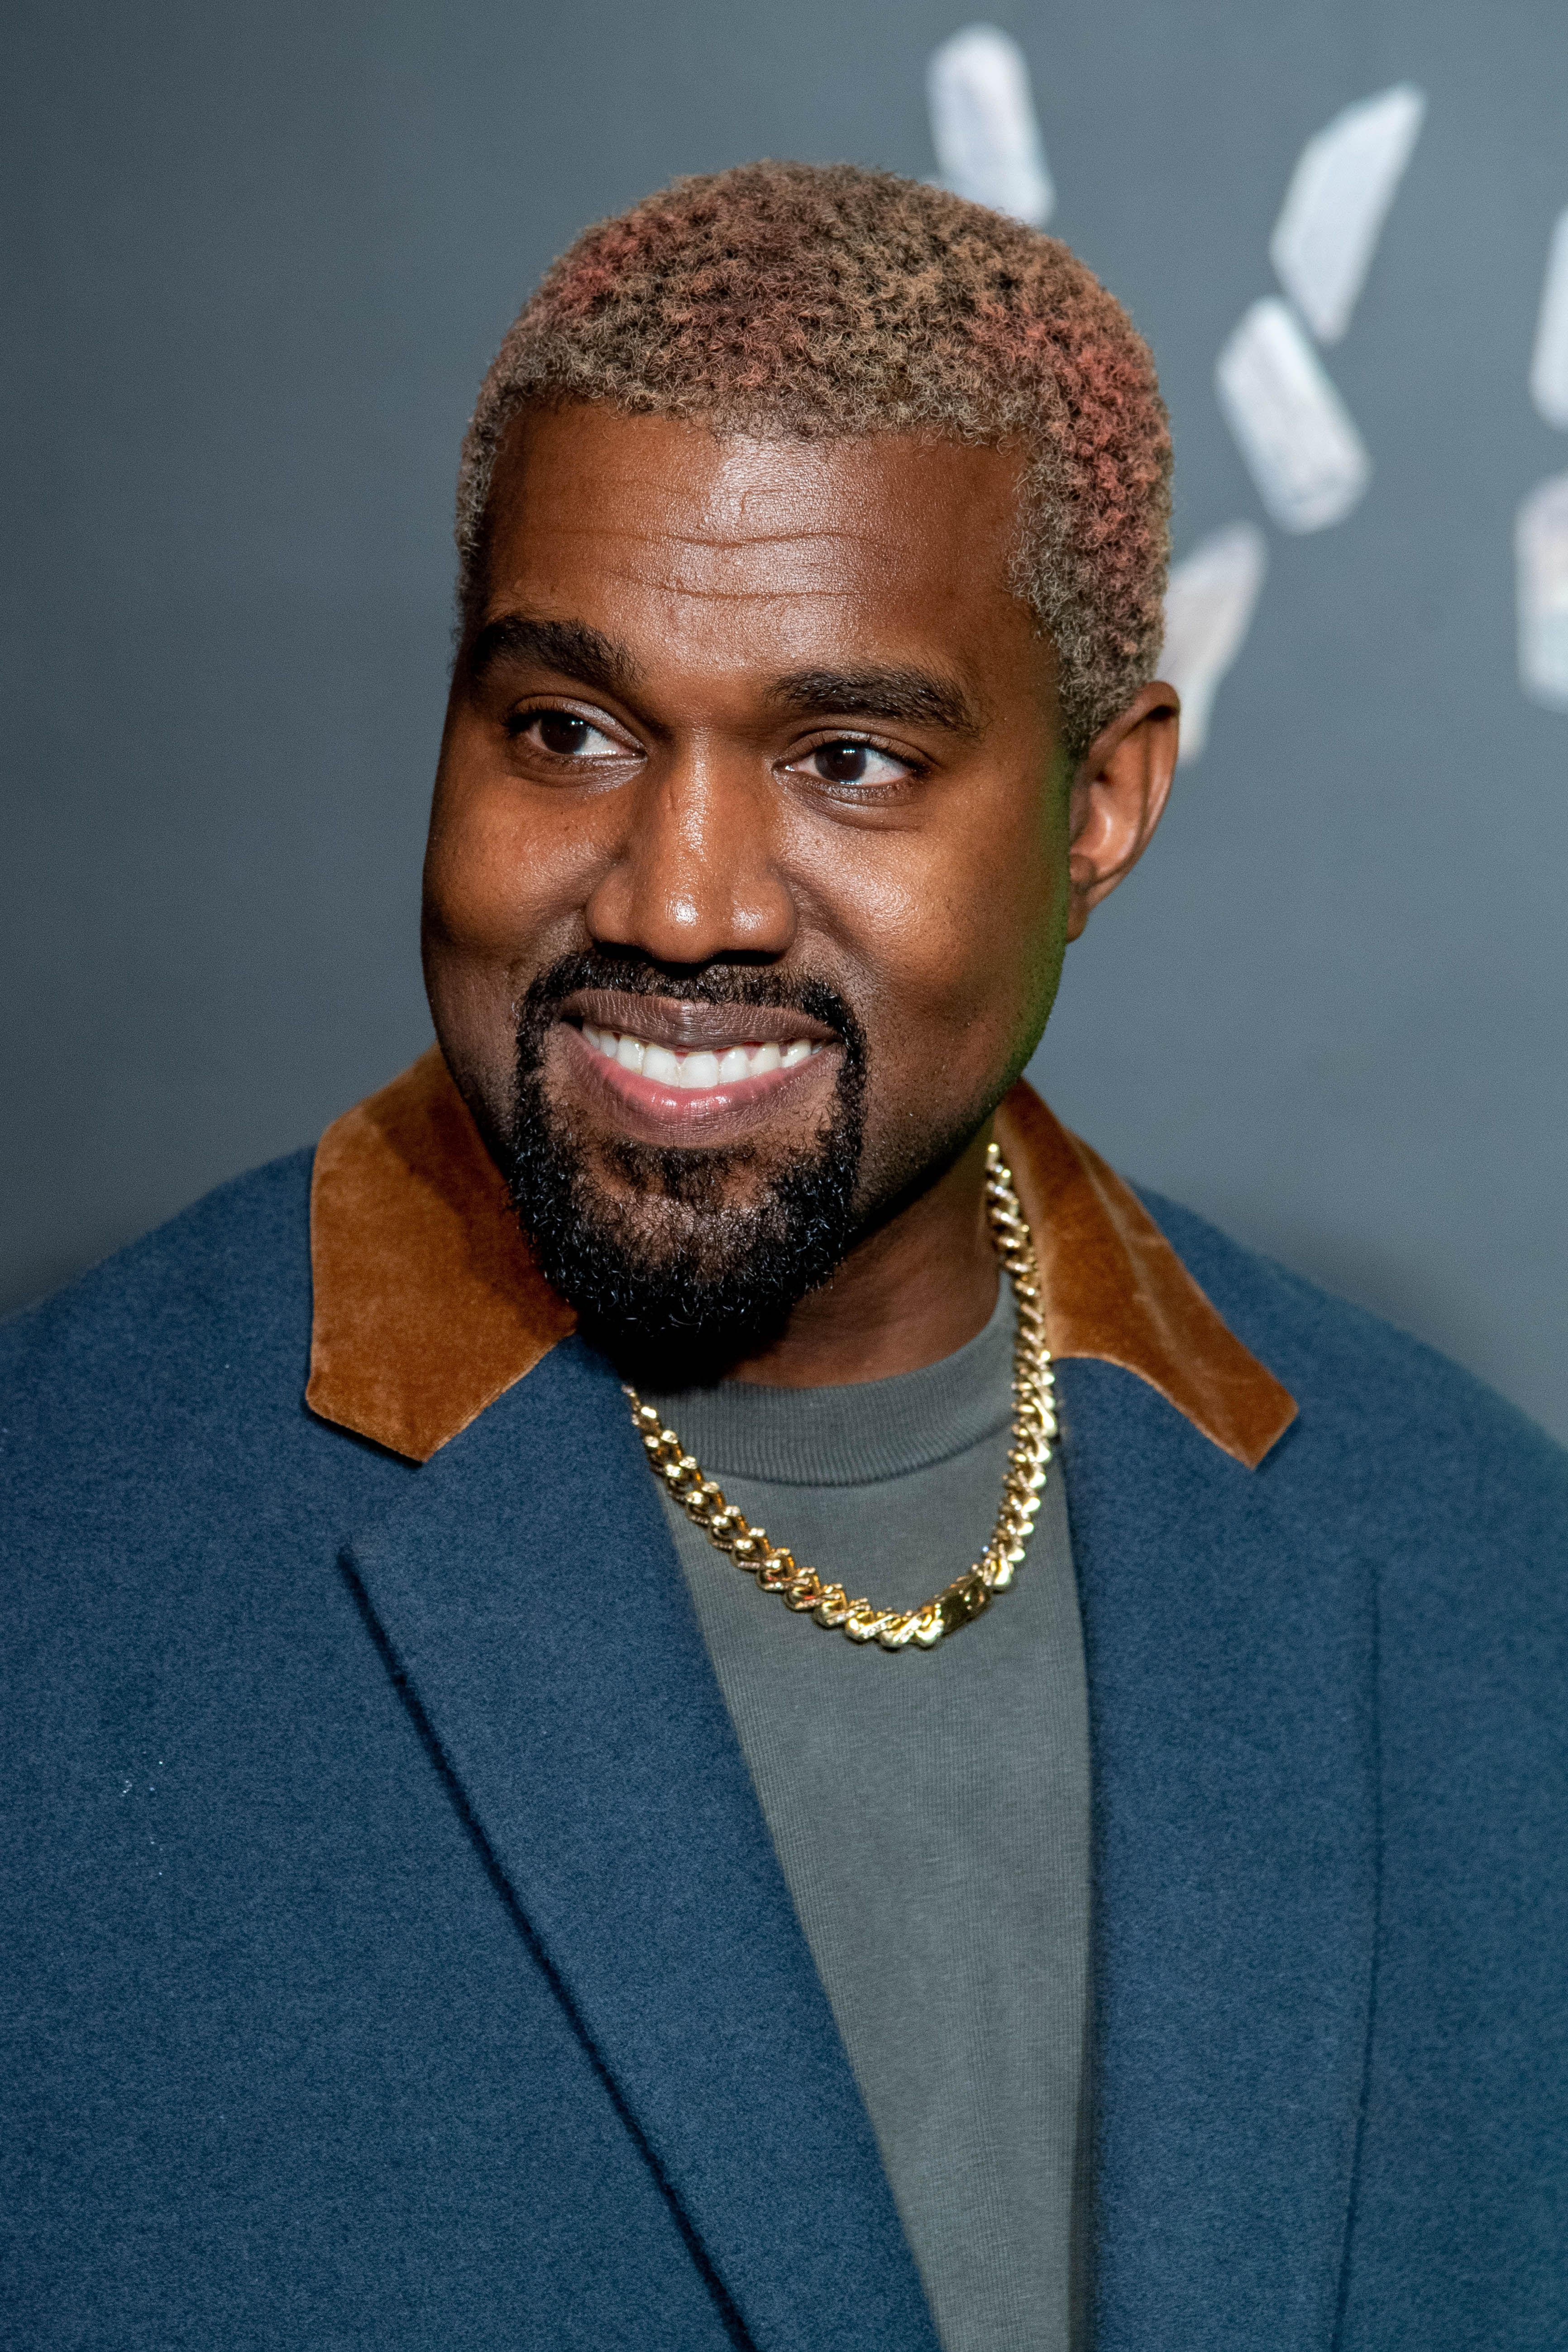 Kanye West S Medication Changes Who He Is According To Kim Kardashian West 1 Live